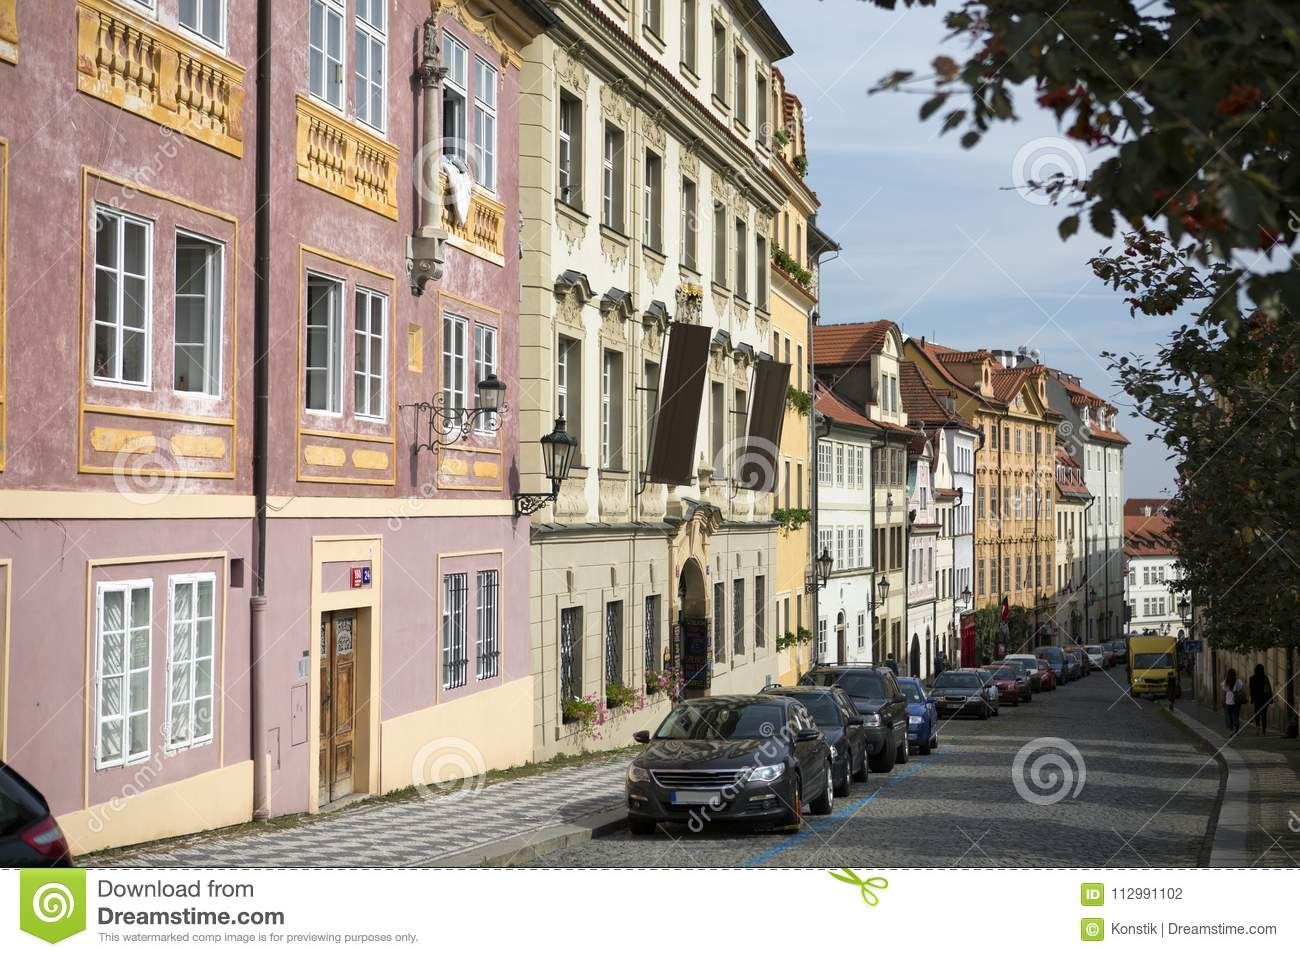 Prague. The street paved stone blocks in the old city